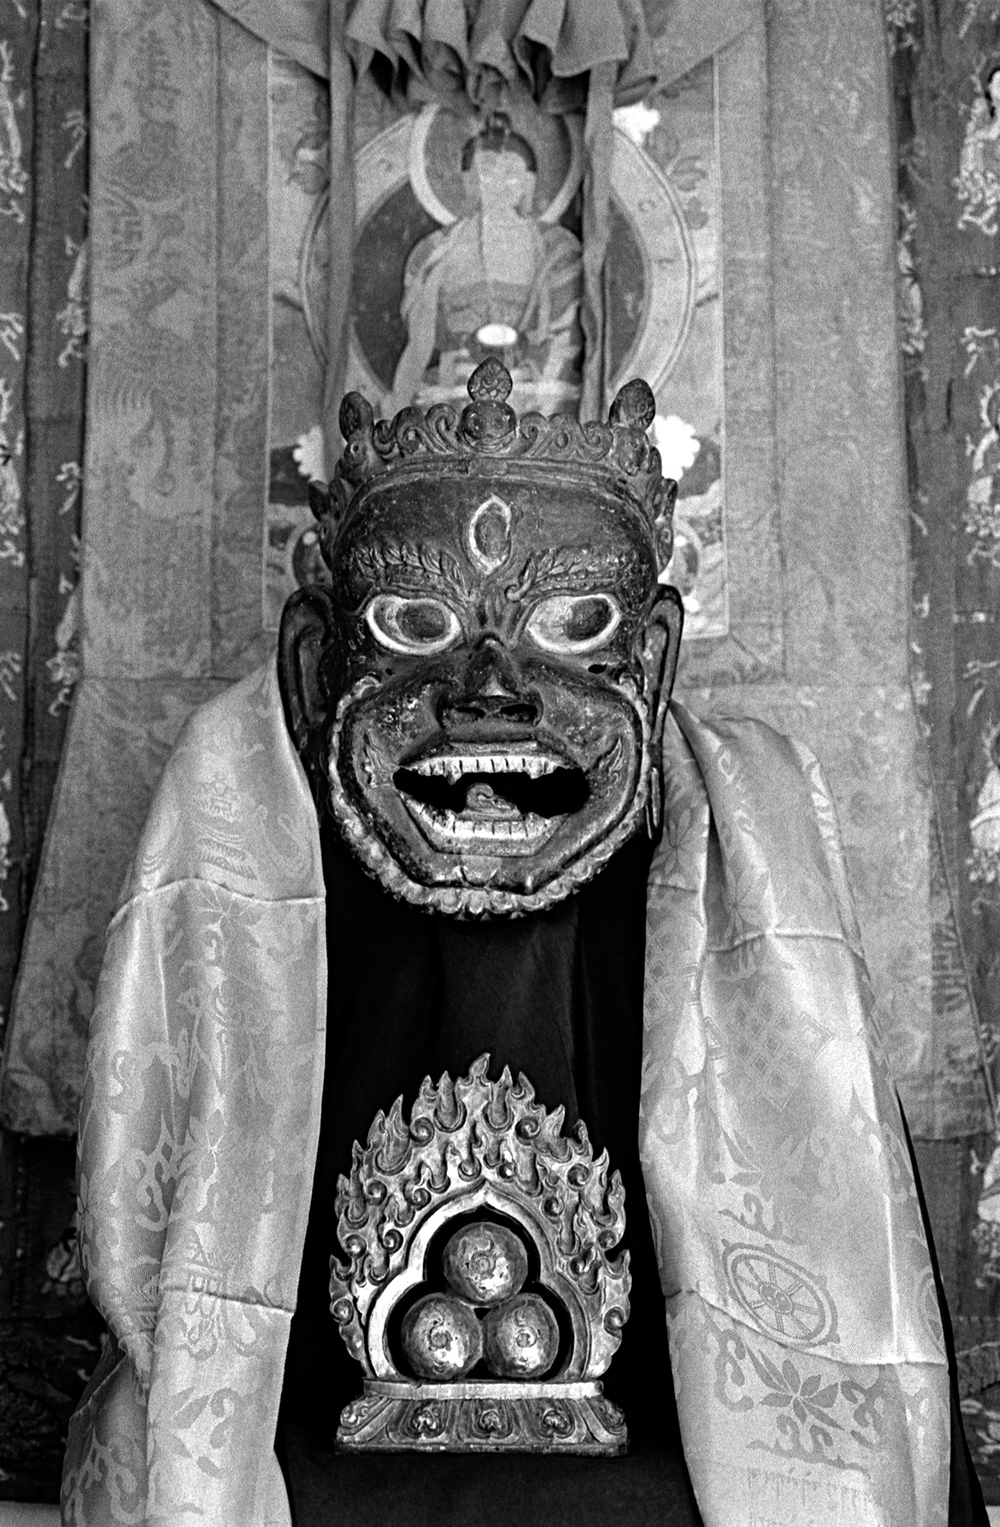 Mahakala mask with Three Jewels (17th century)